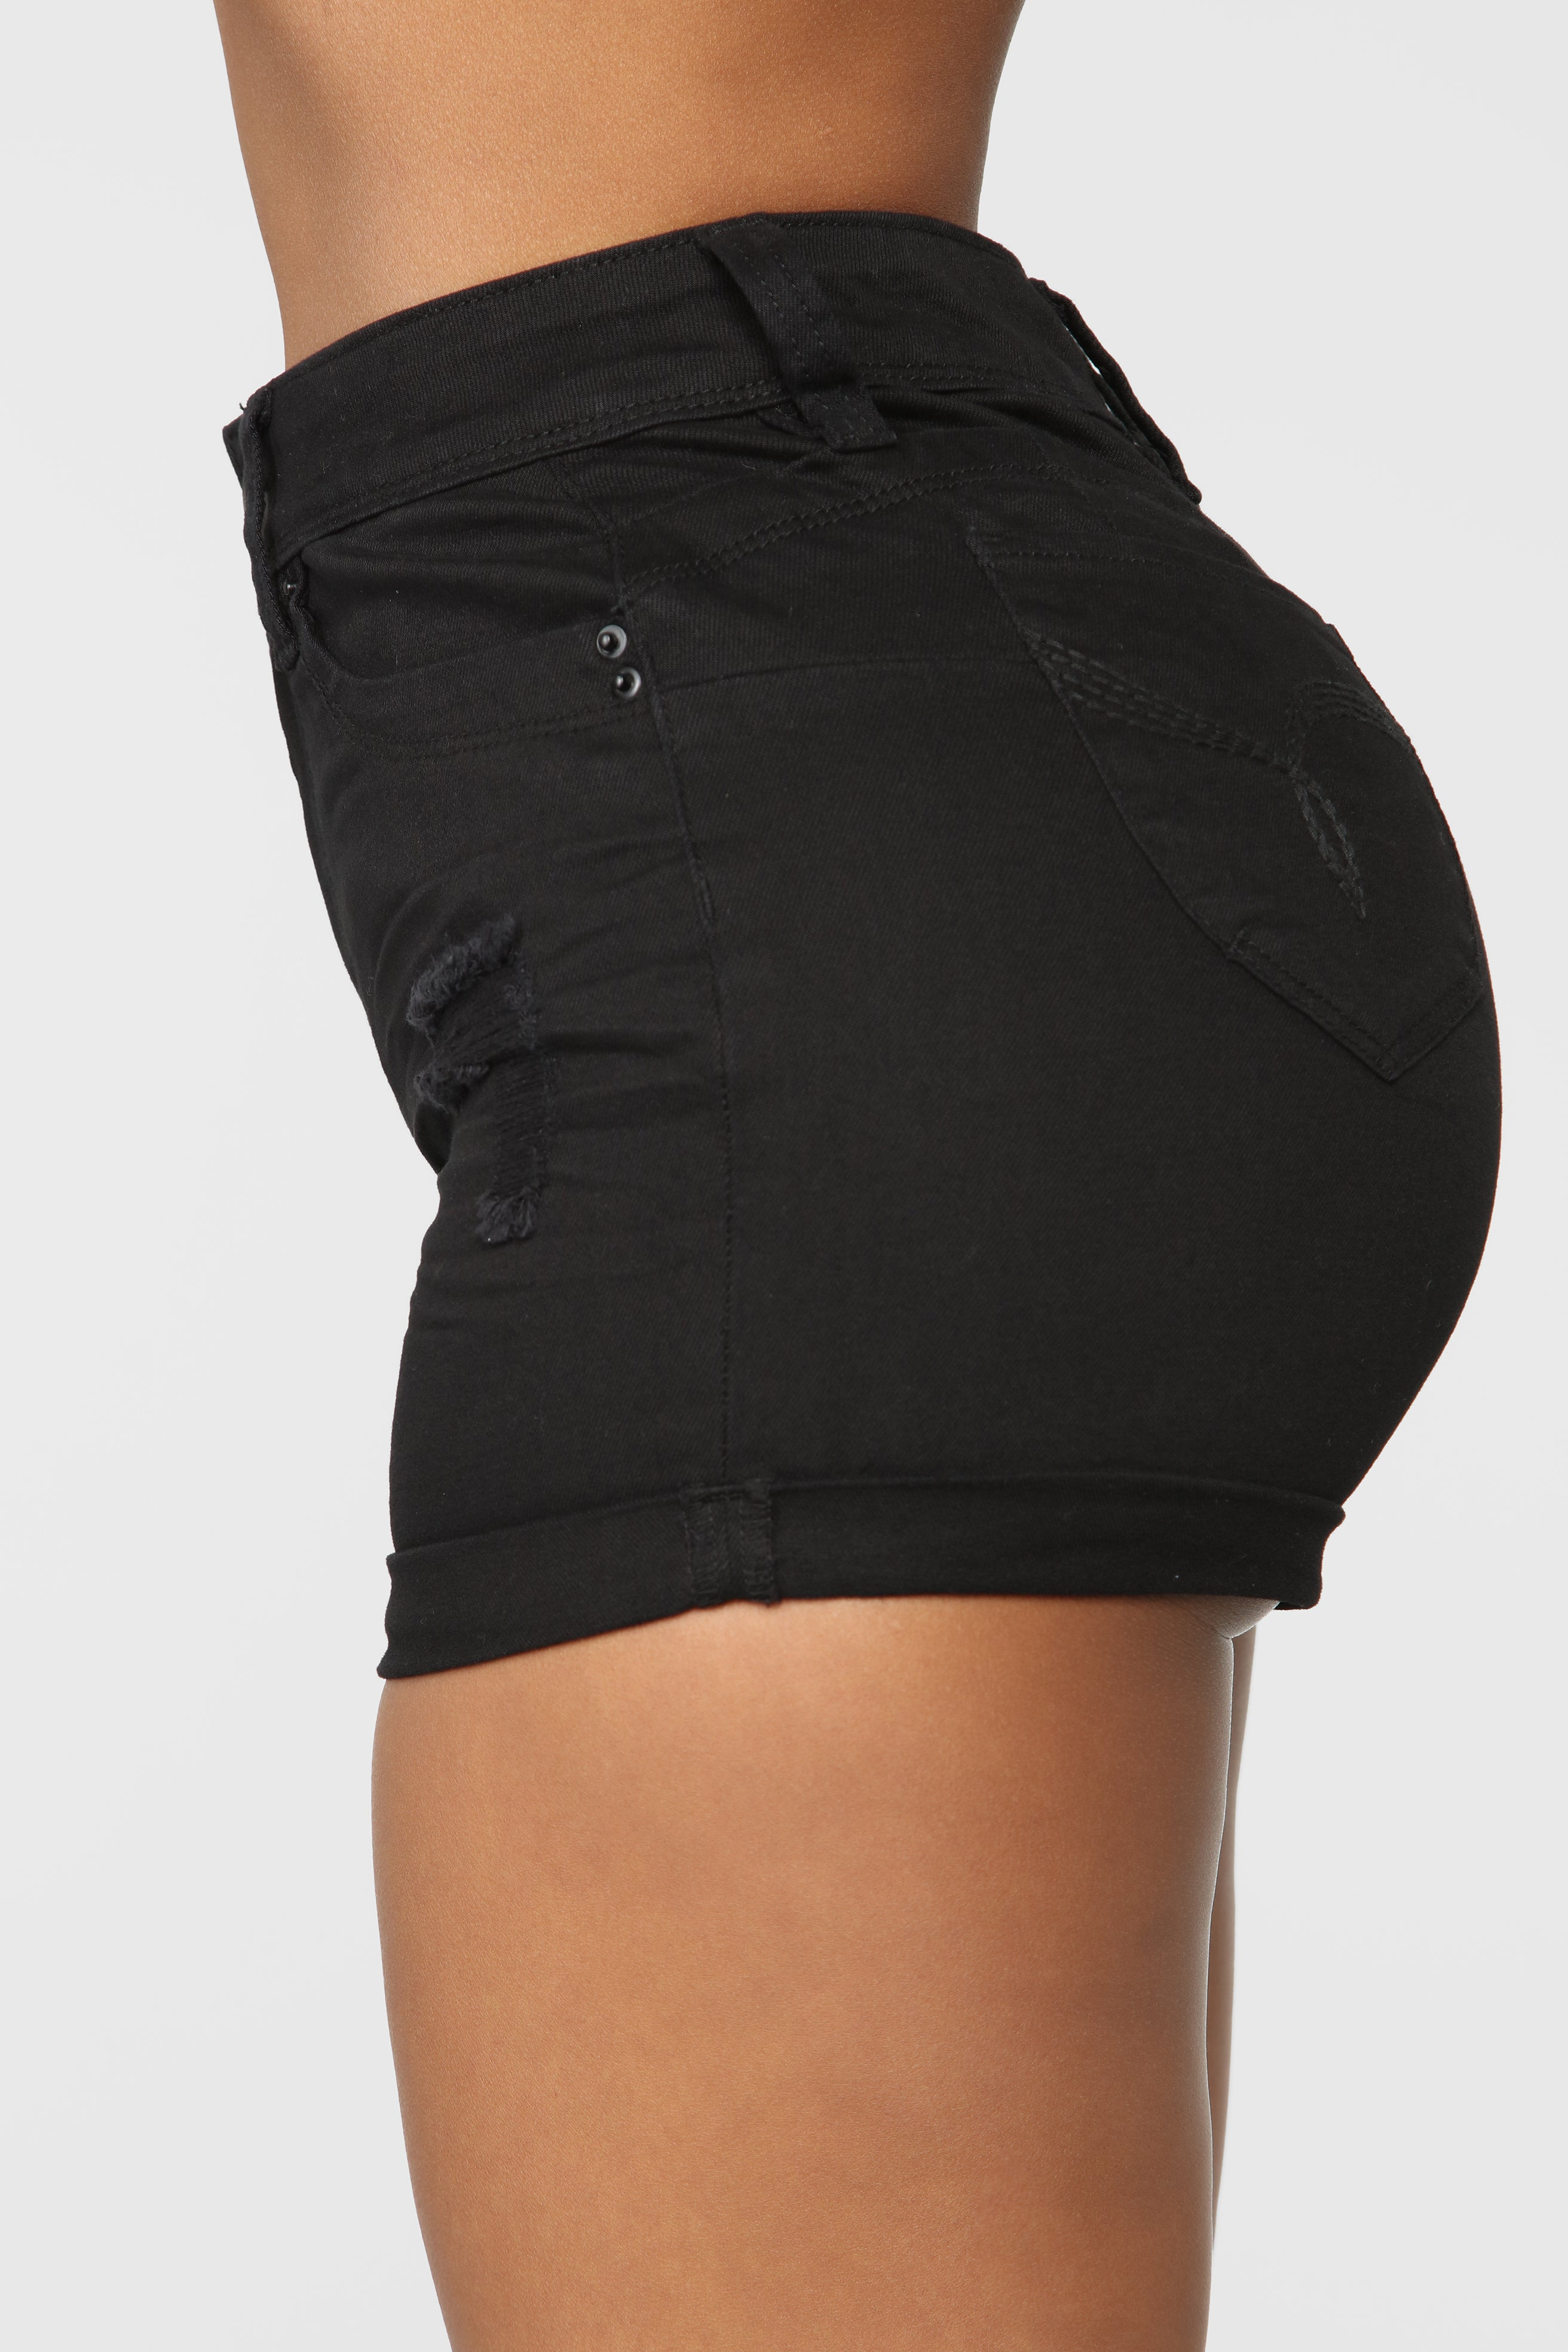 Ariana High Rise Short - Black ea653618cfa